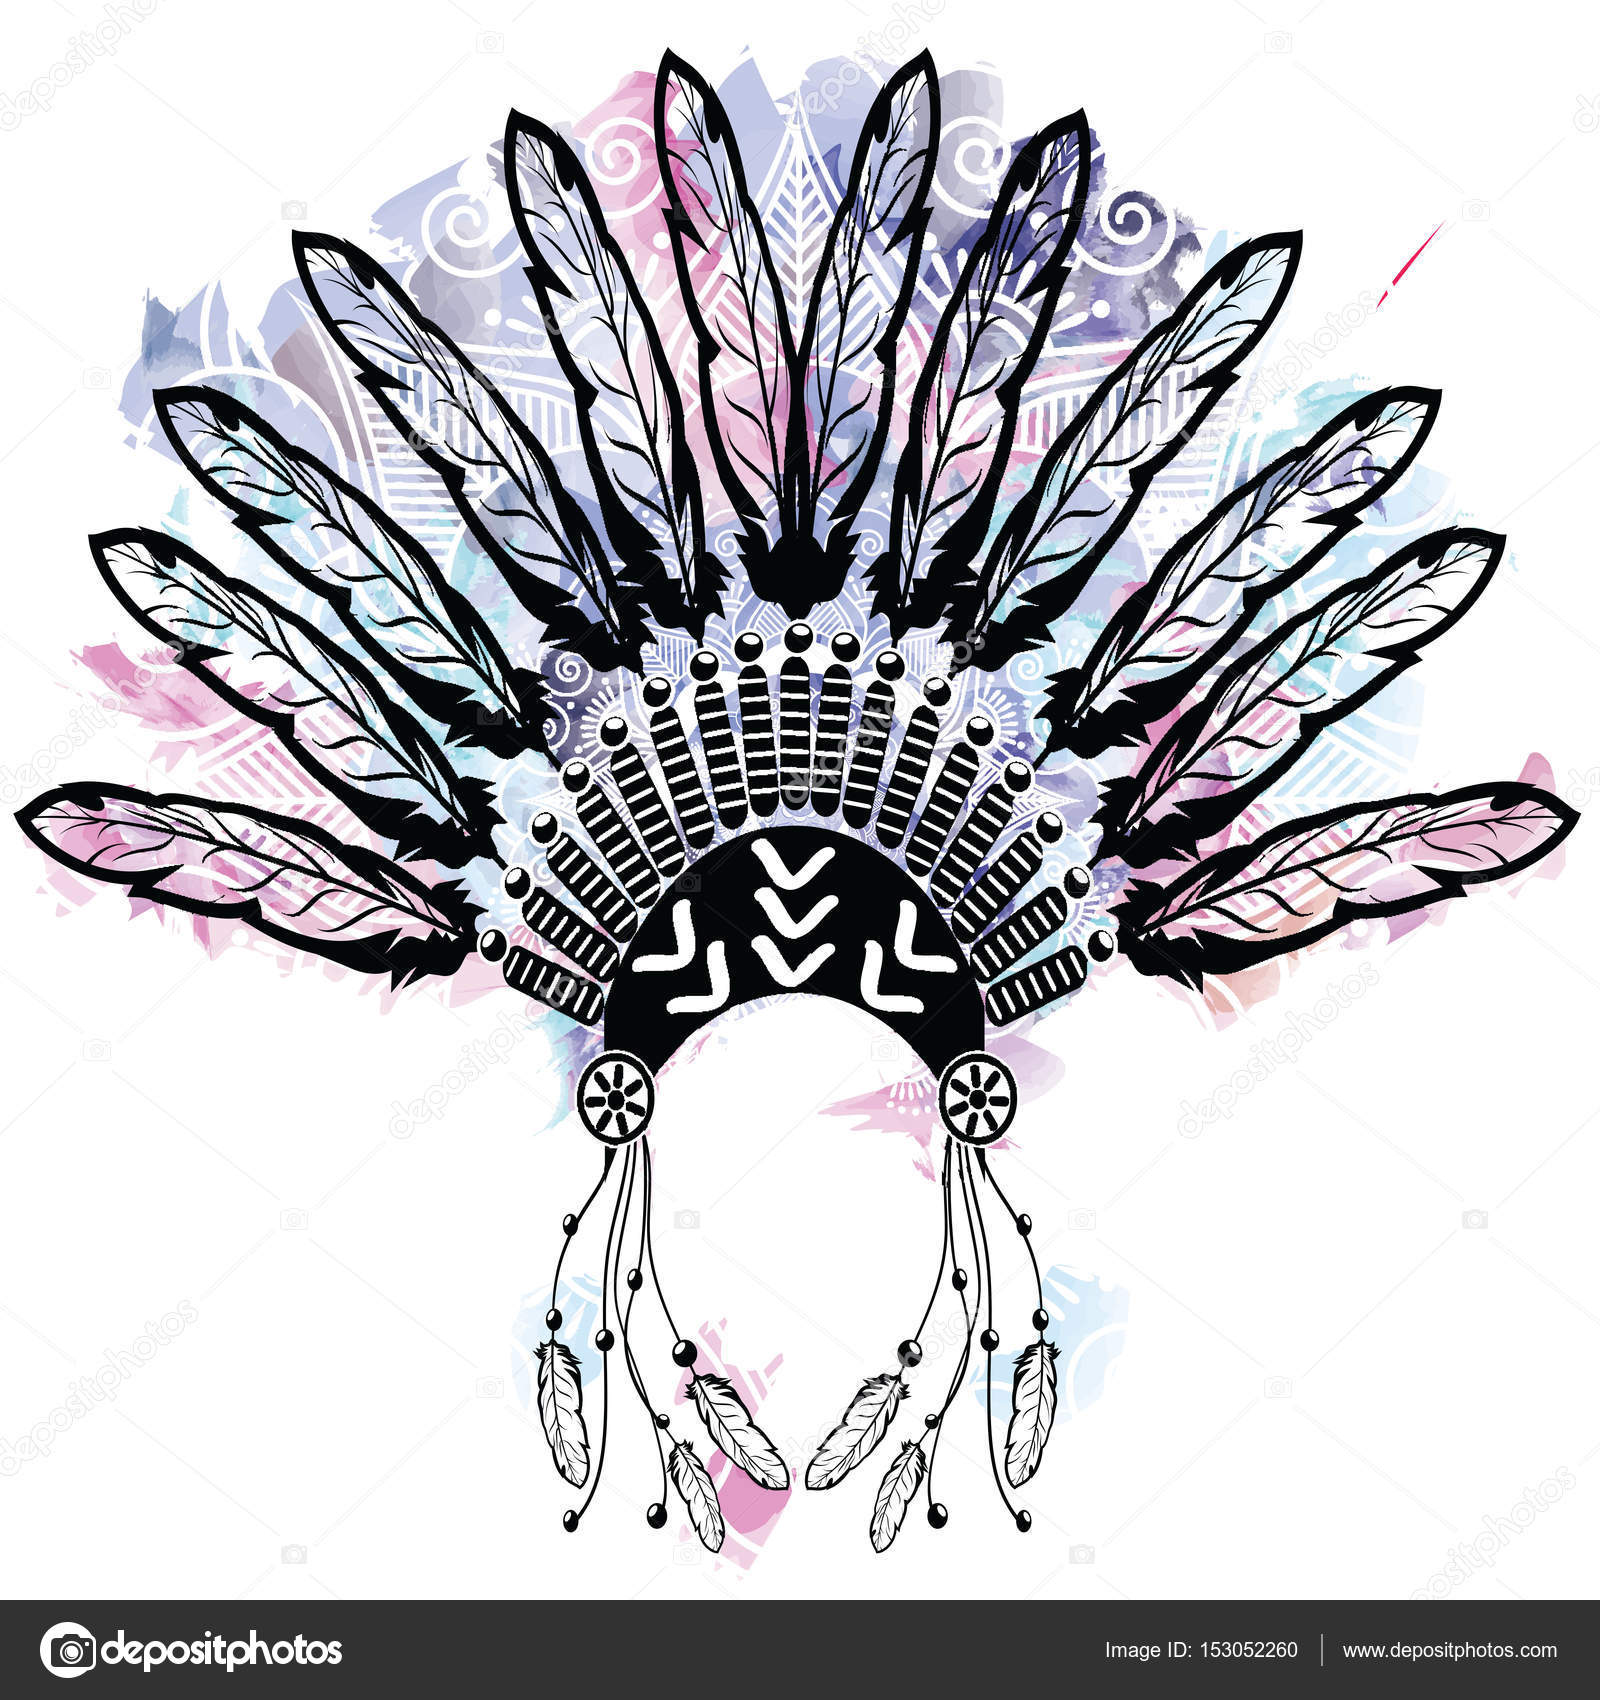 59cc45fa4f748 Aztec style headdress made out of feathers symbolizing native American  culture on colorful watercolors background with mandala lace tattoo style  decorated ...